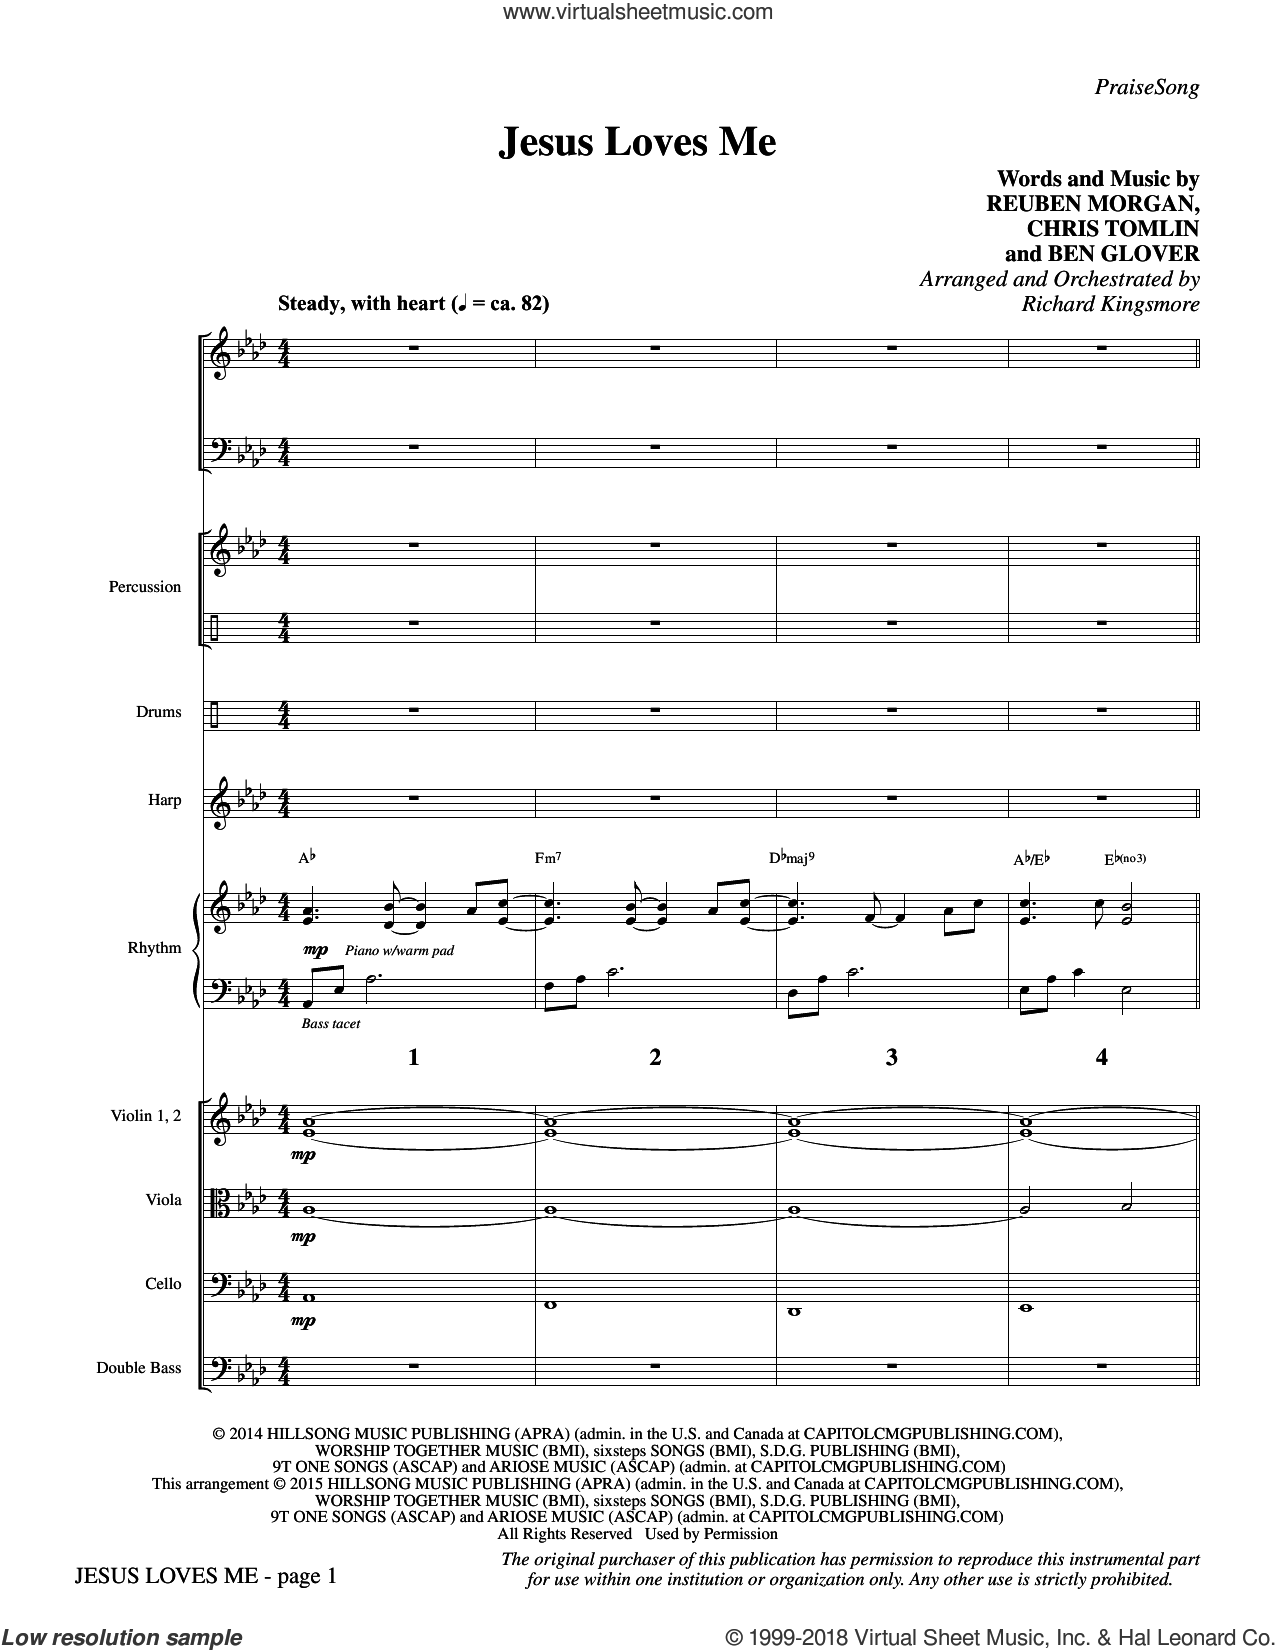 Tomlin - Jesus Loves Me sheet music (complete collection) for ...